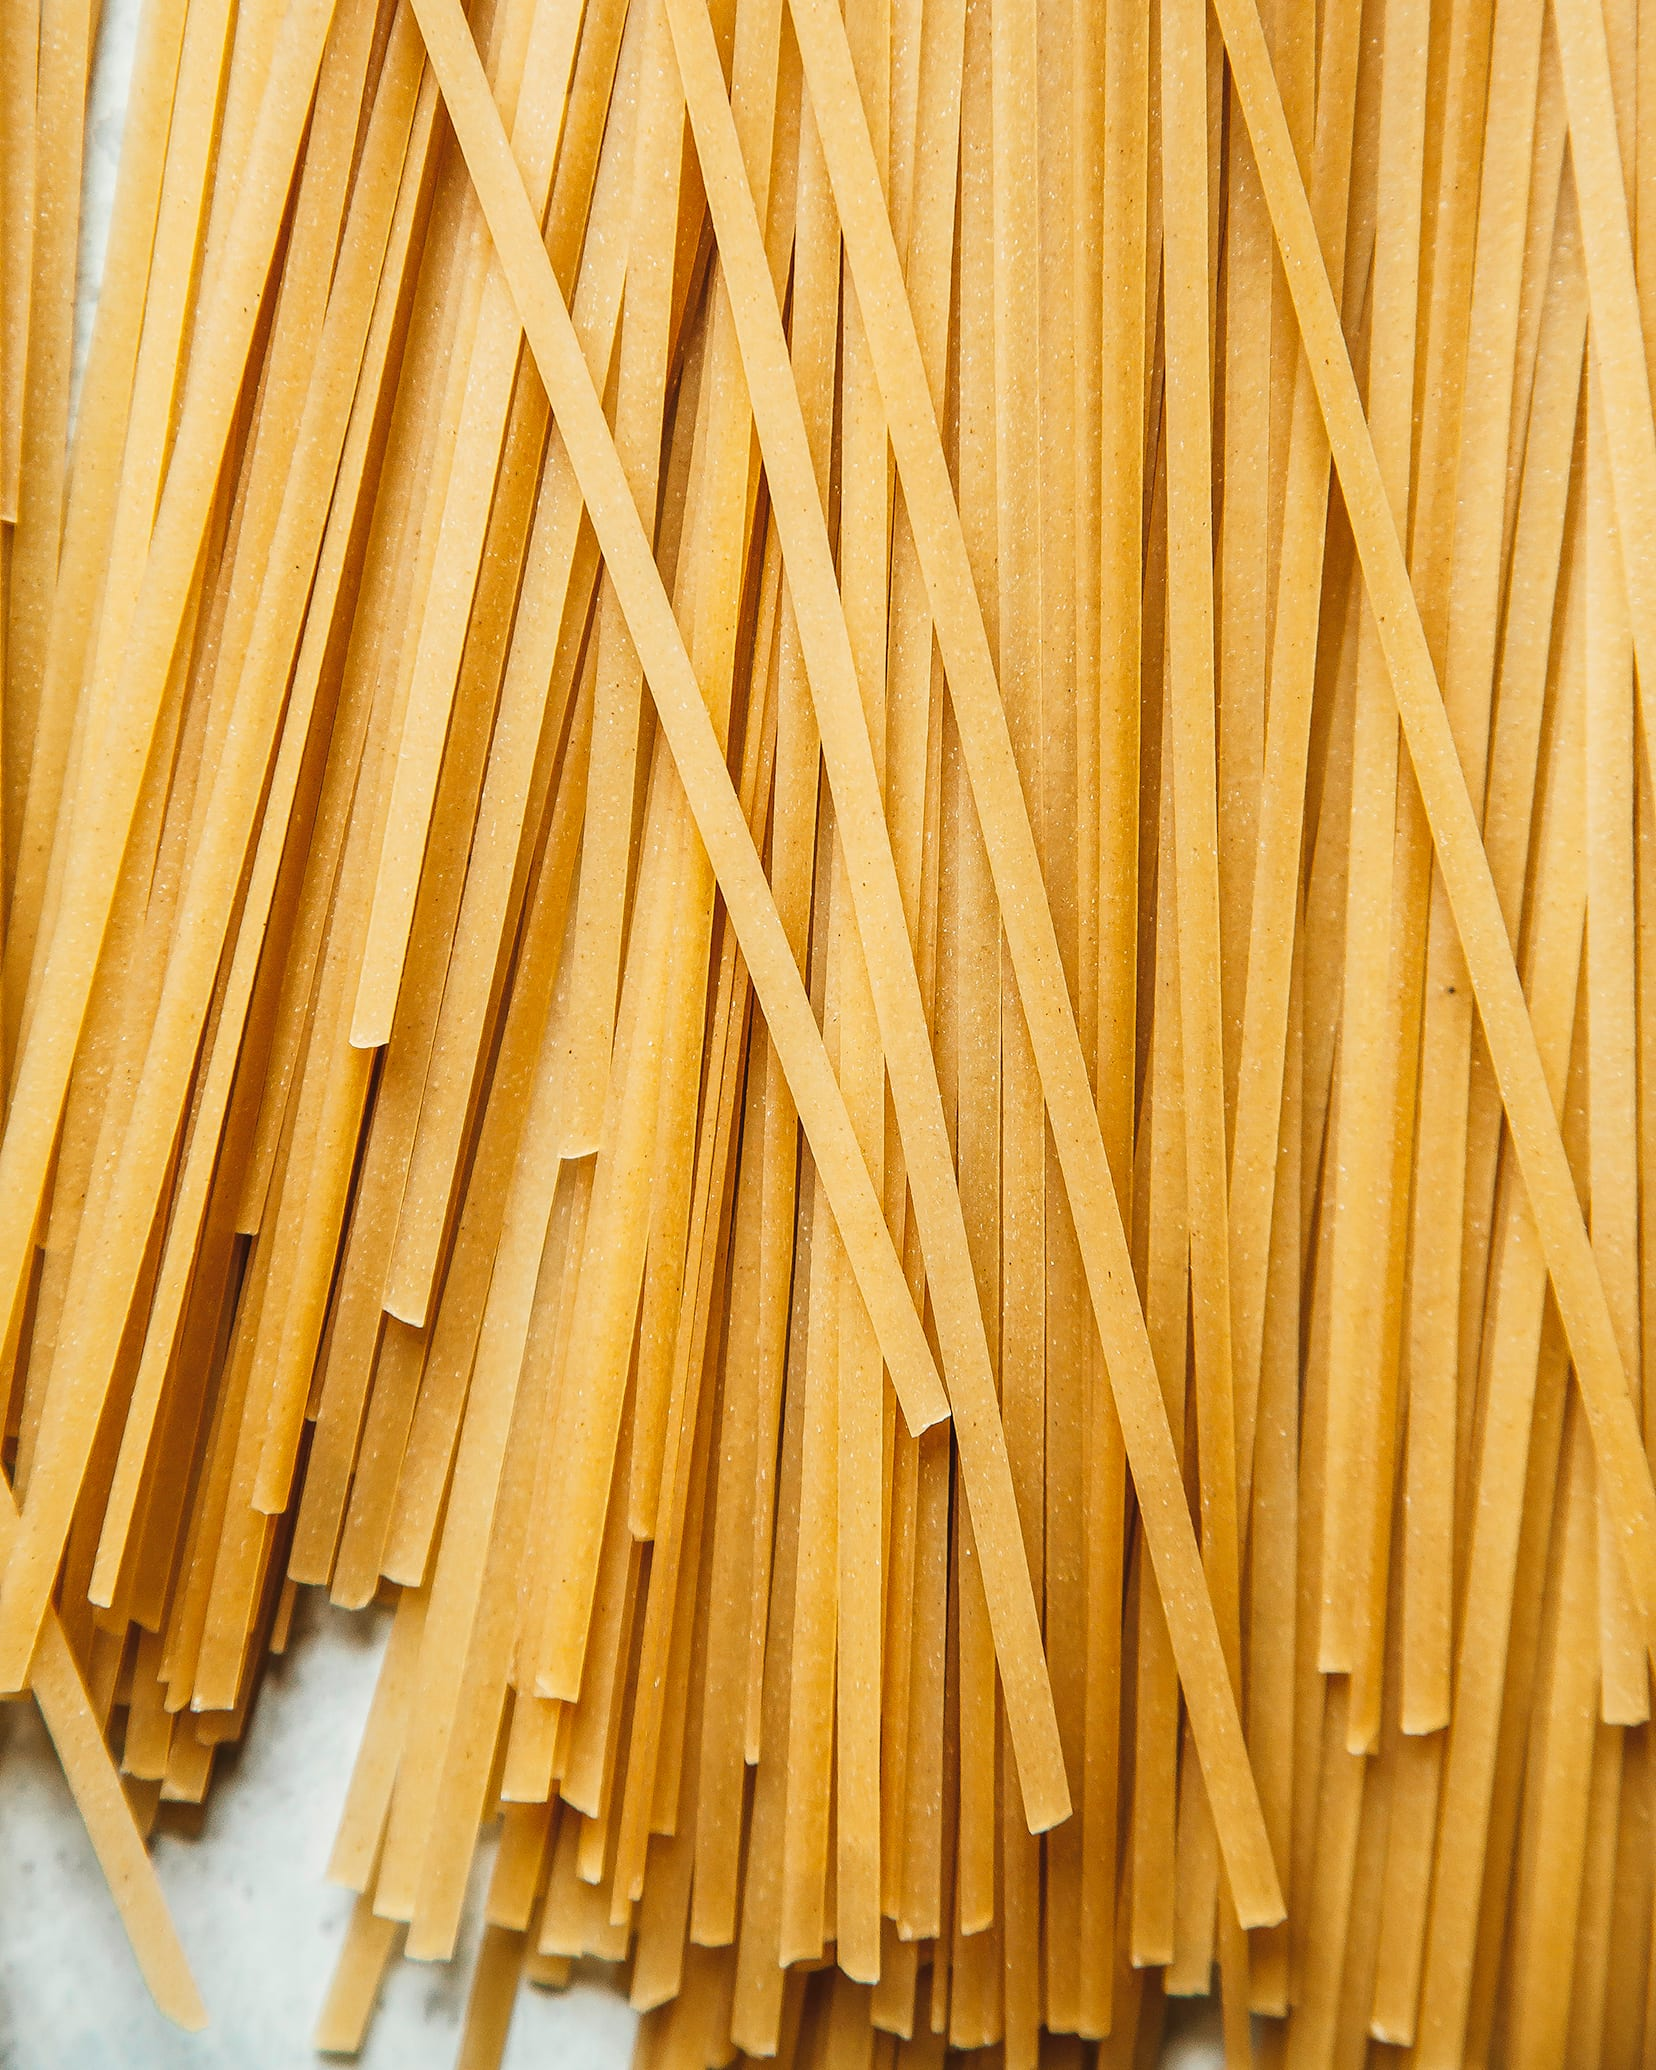 An up close shot of brown rice noodles.